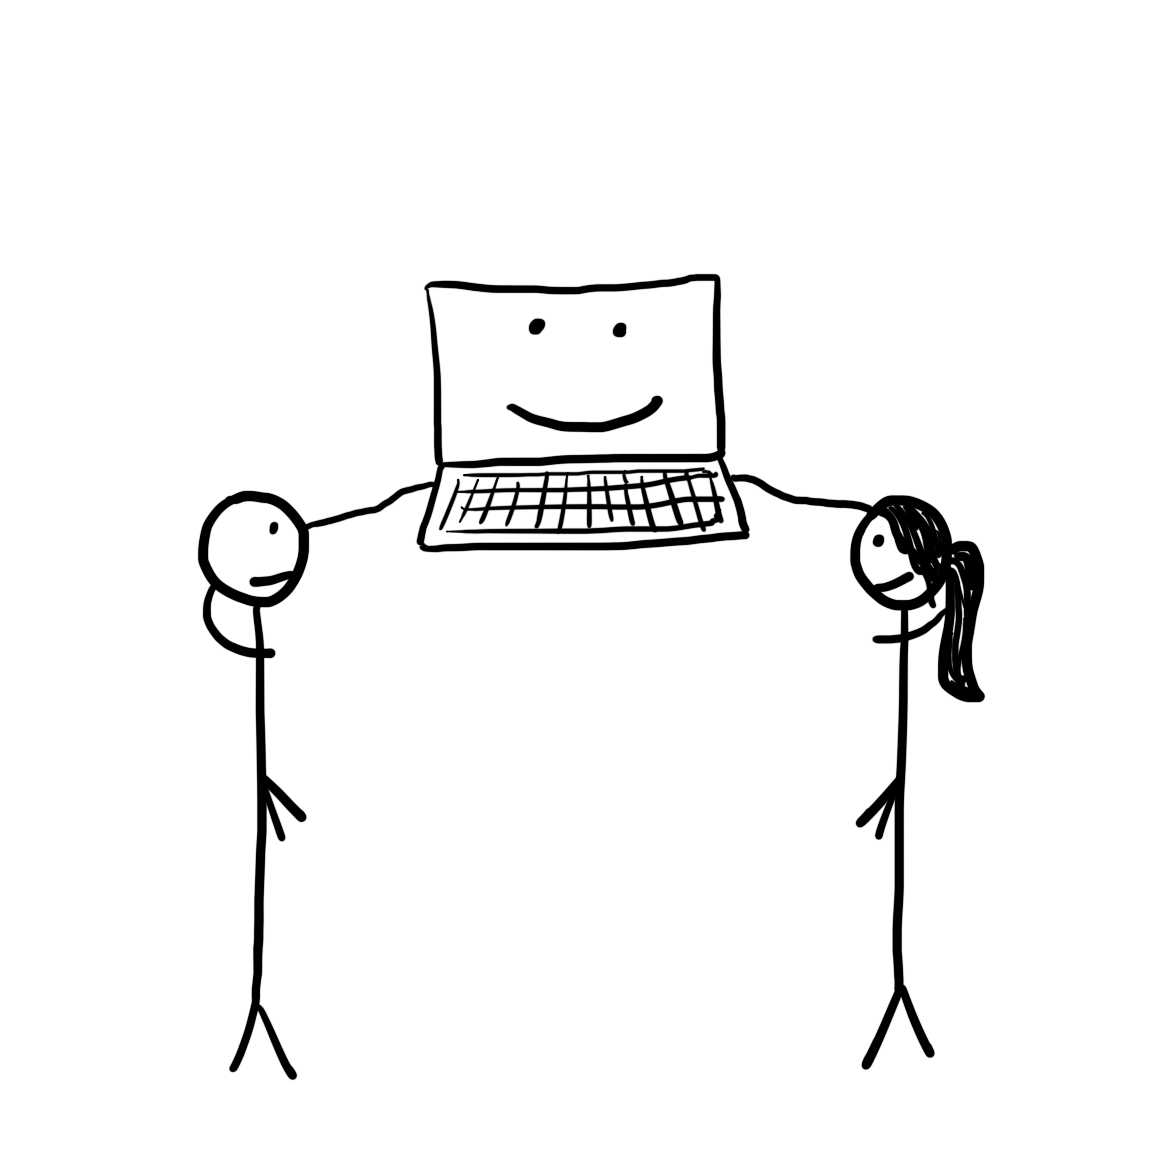 Online vs offline dating agency